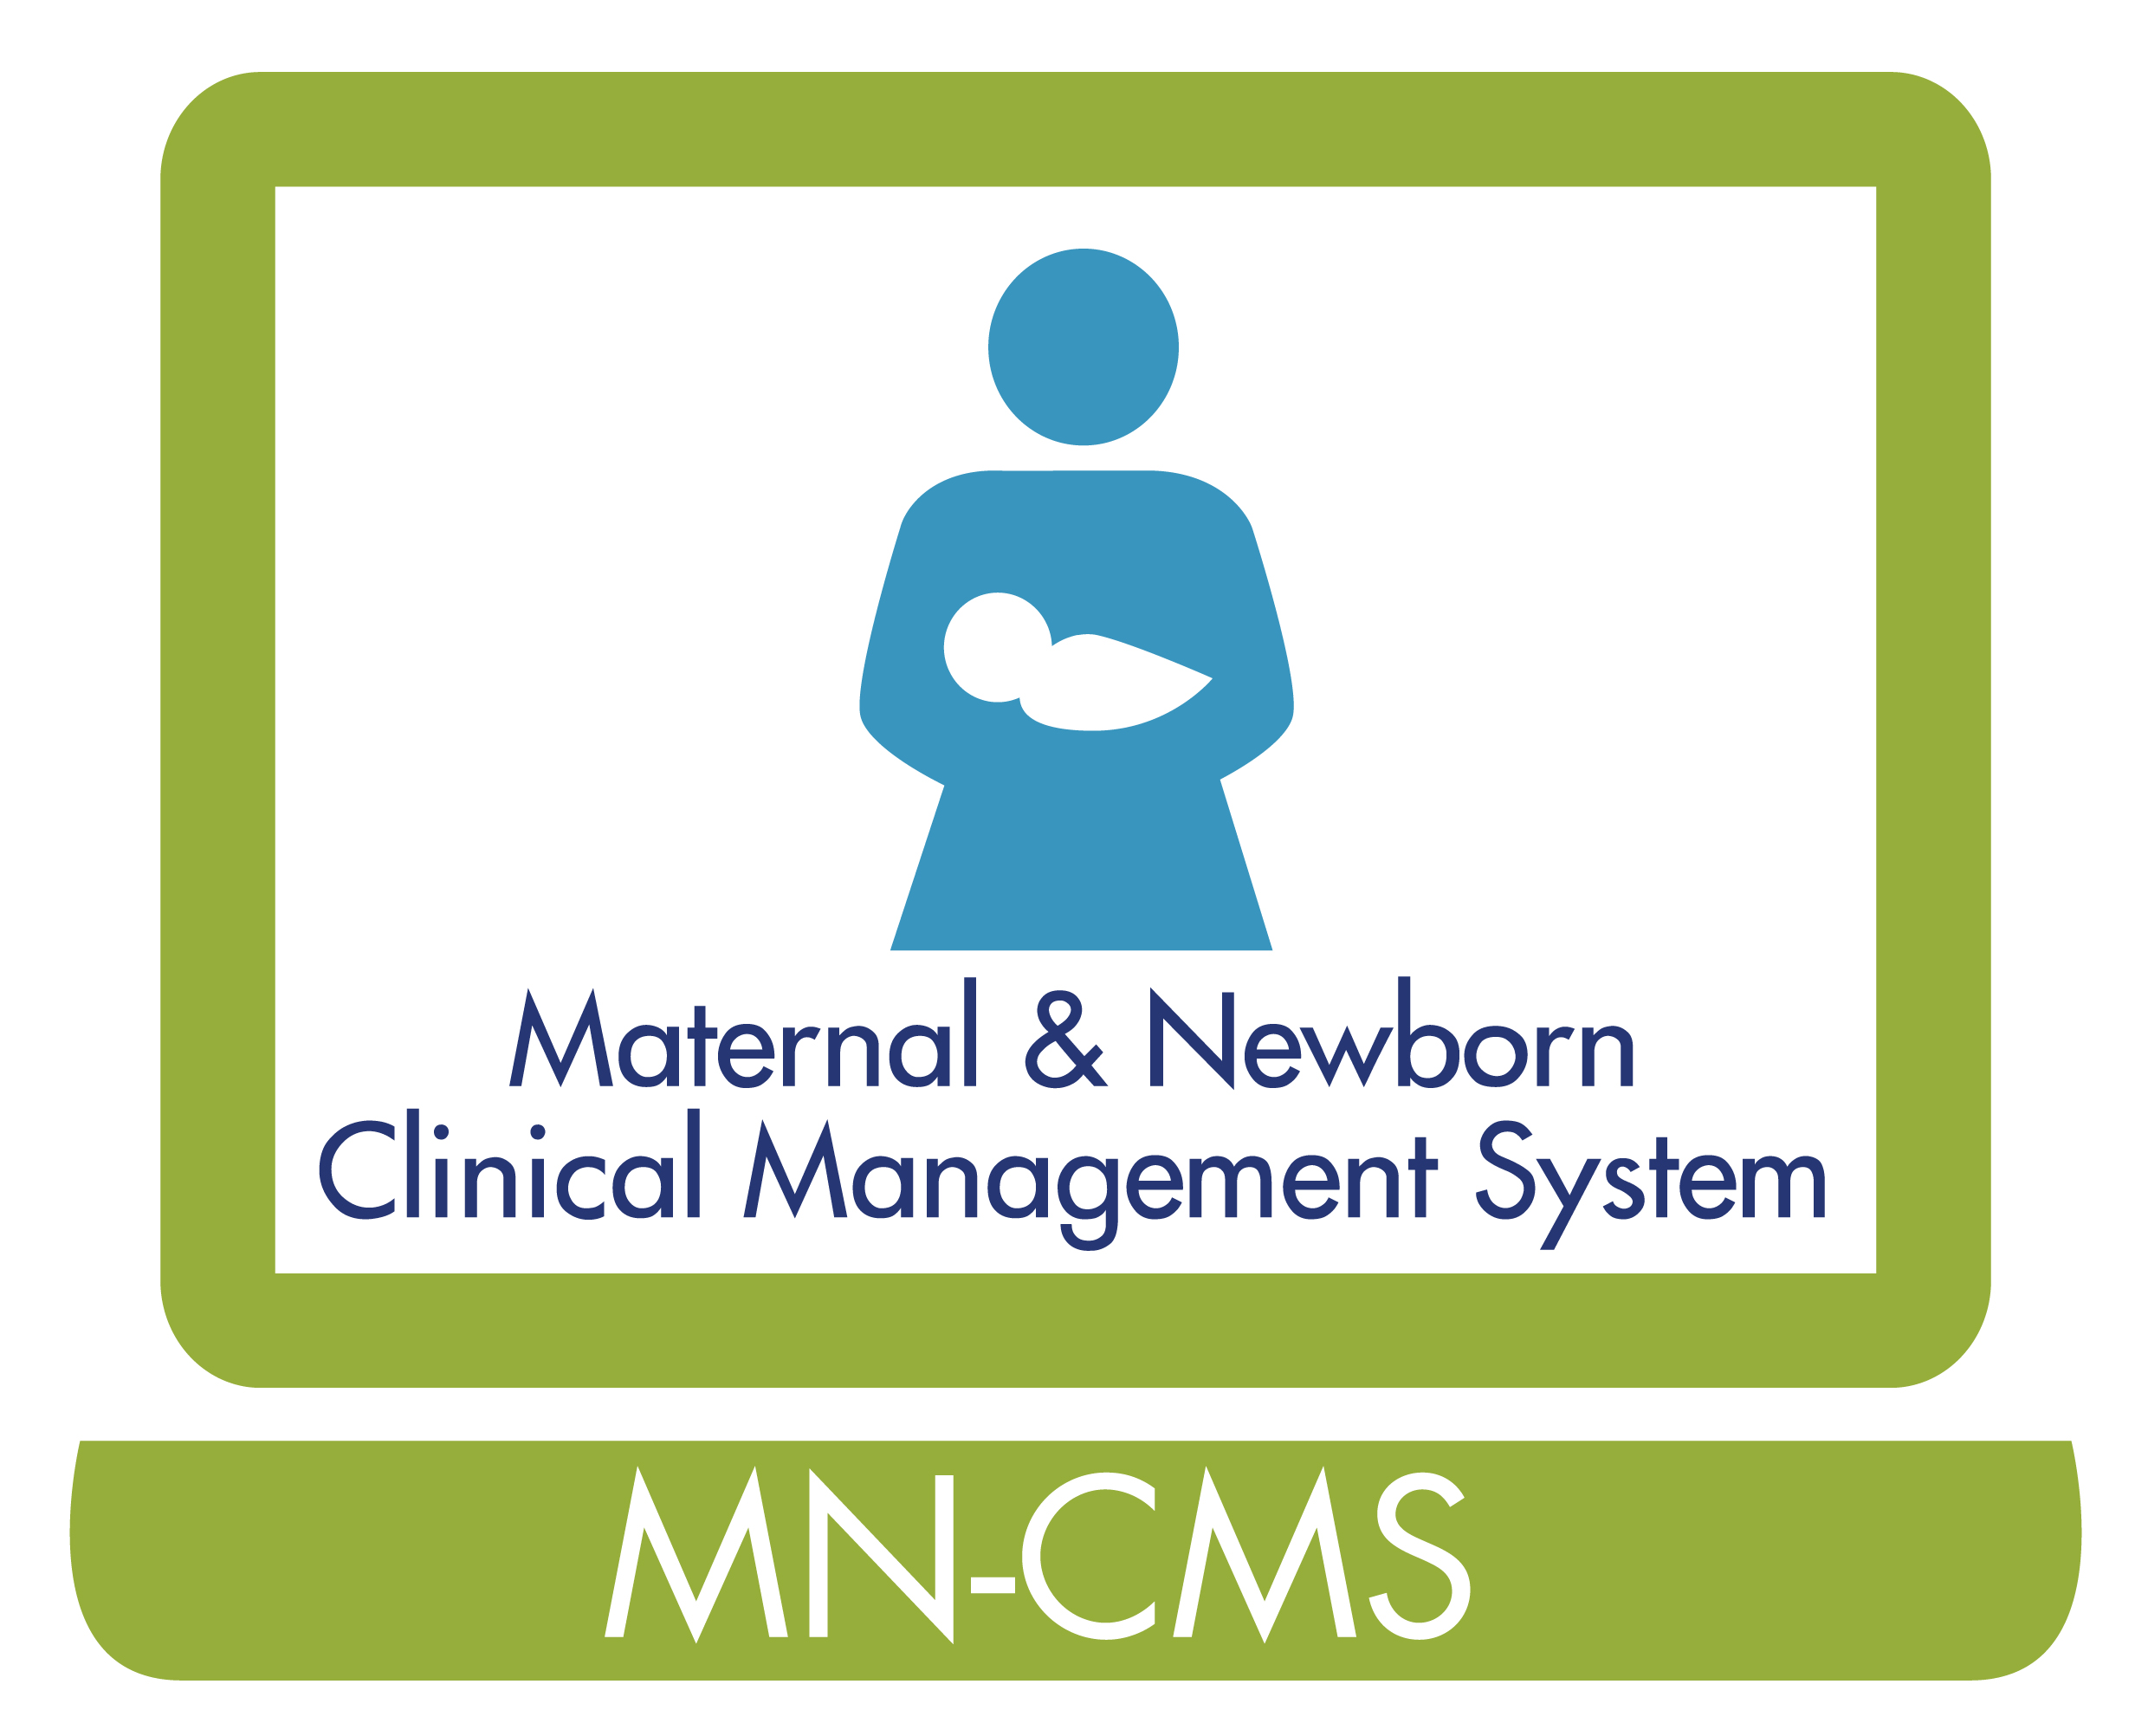 Maternal Amp Newborn Clinical Management System Ehealth